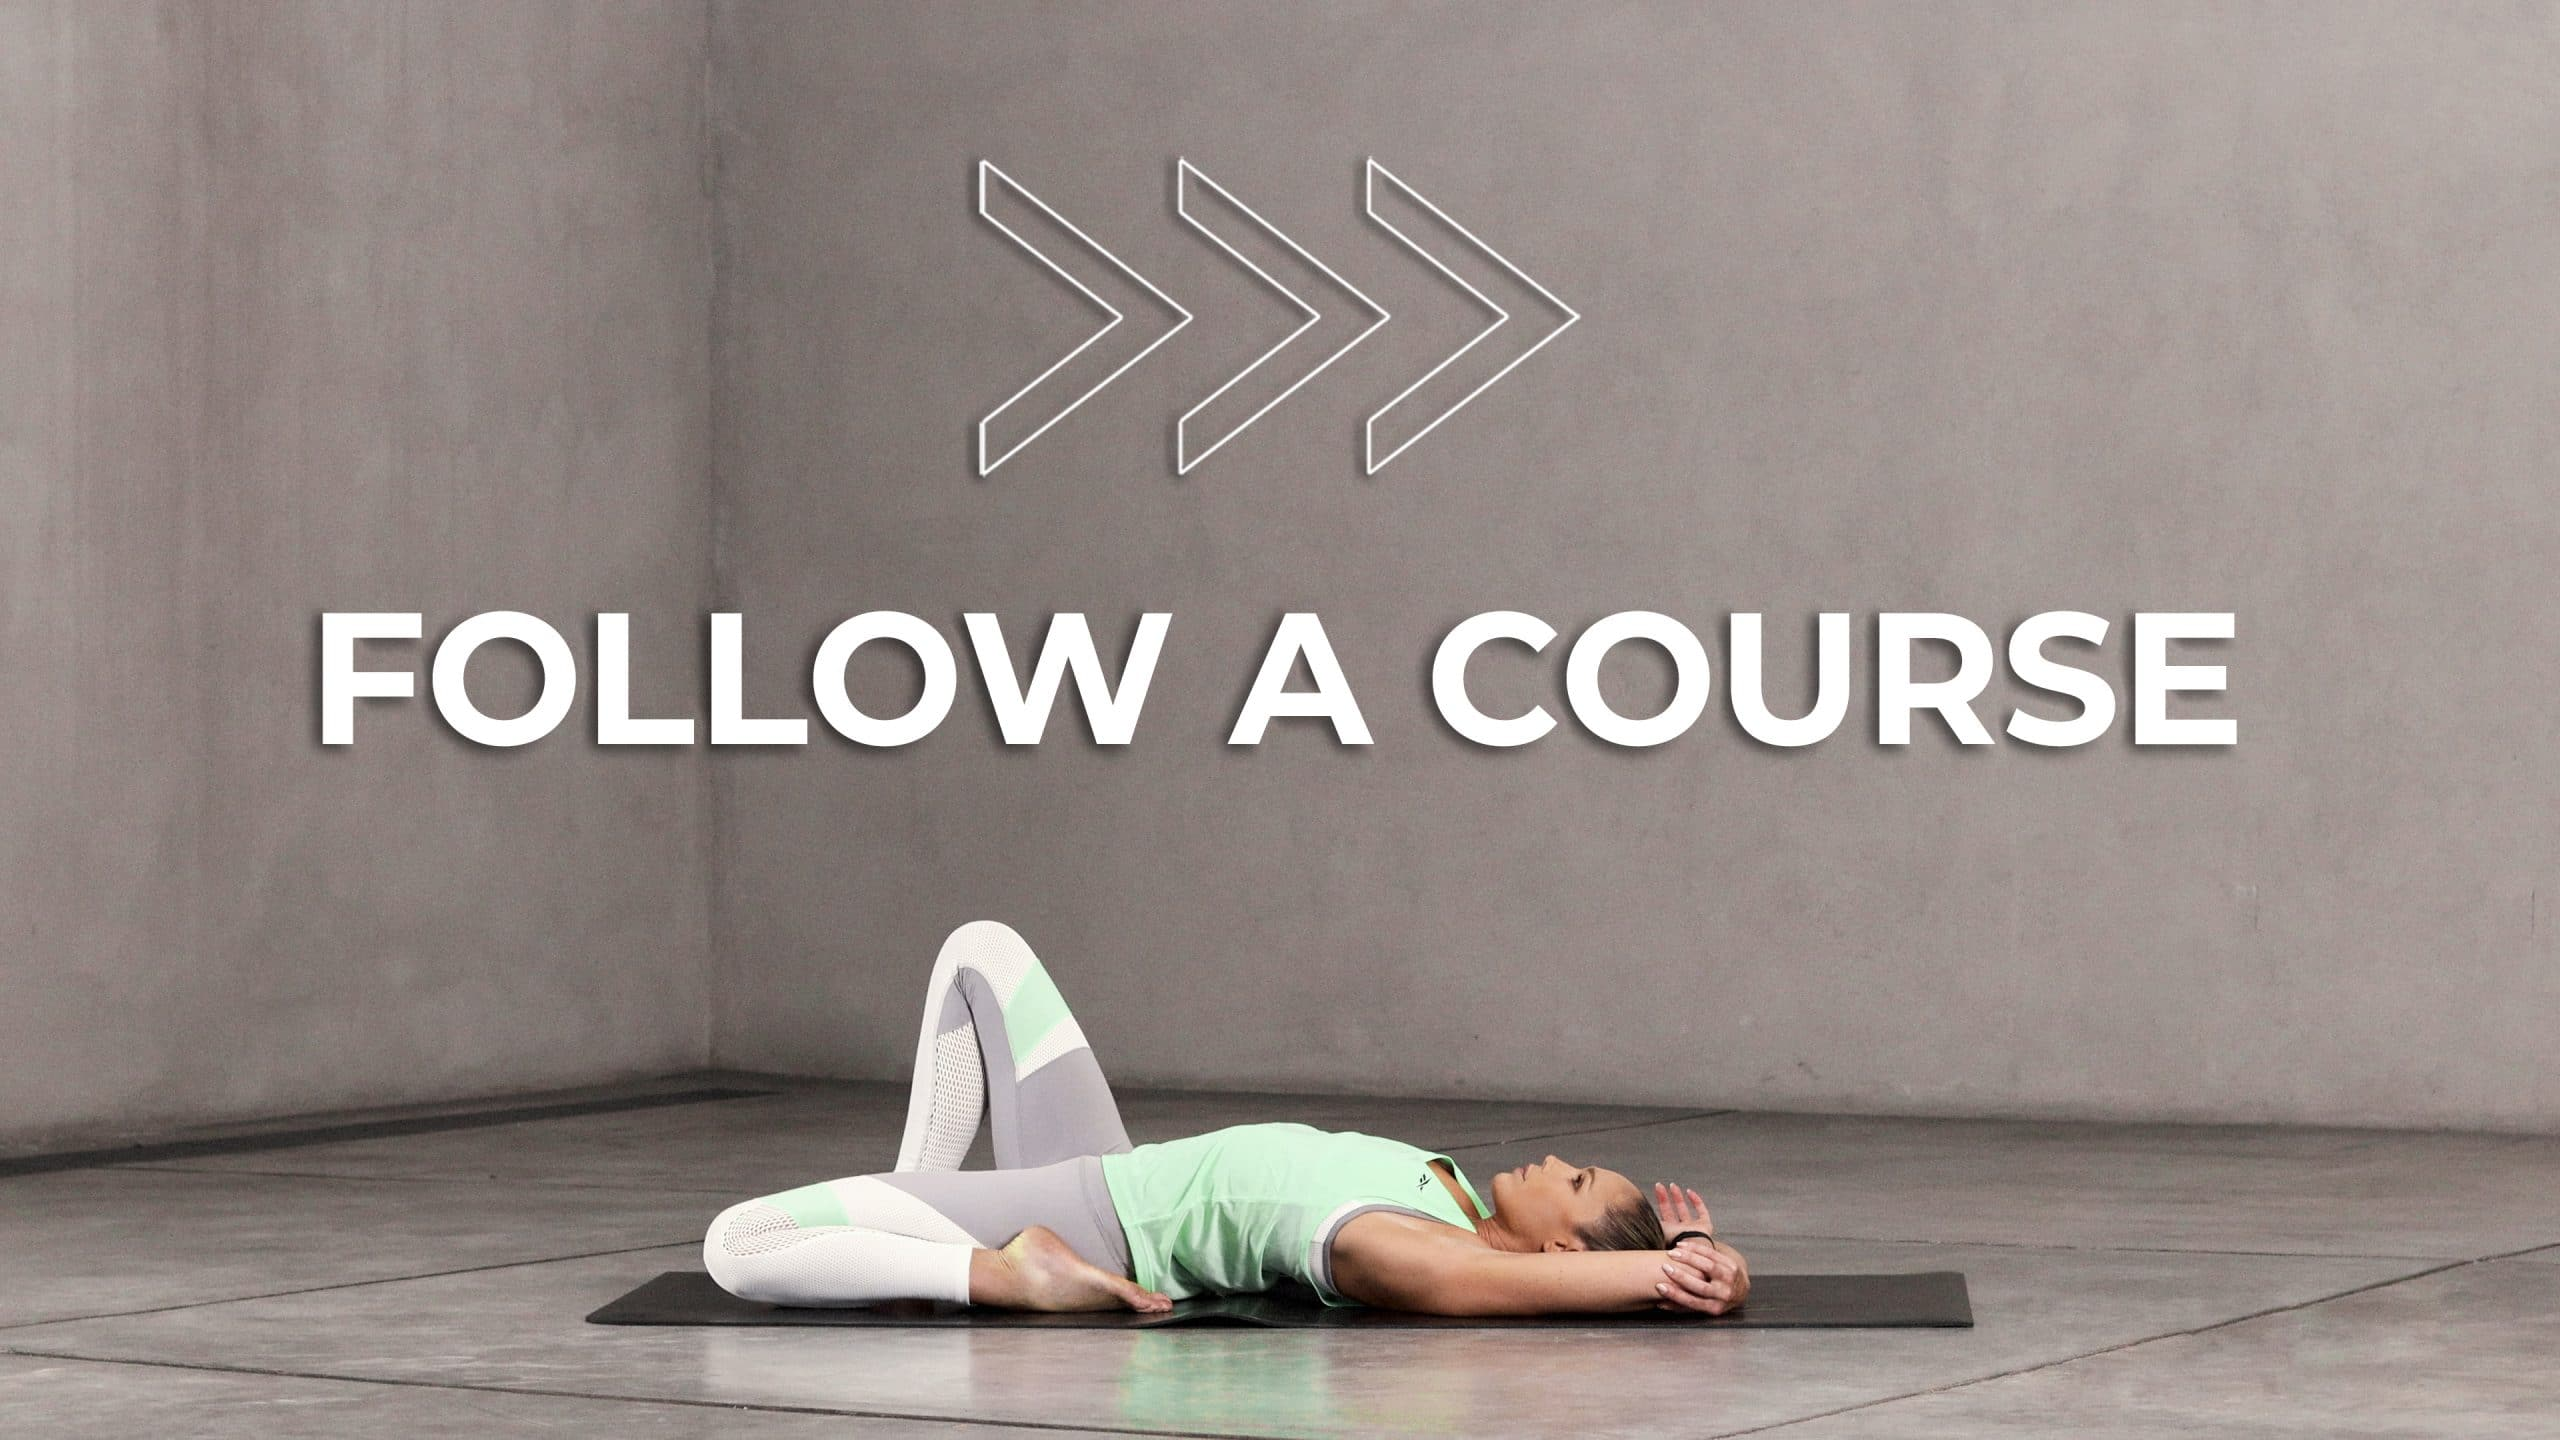 Yoga-15-Courses-For-Athletes